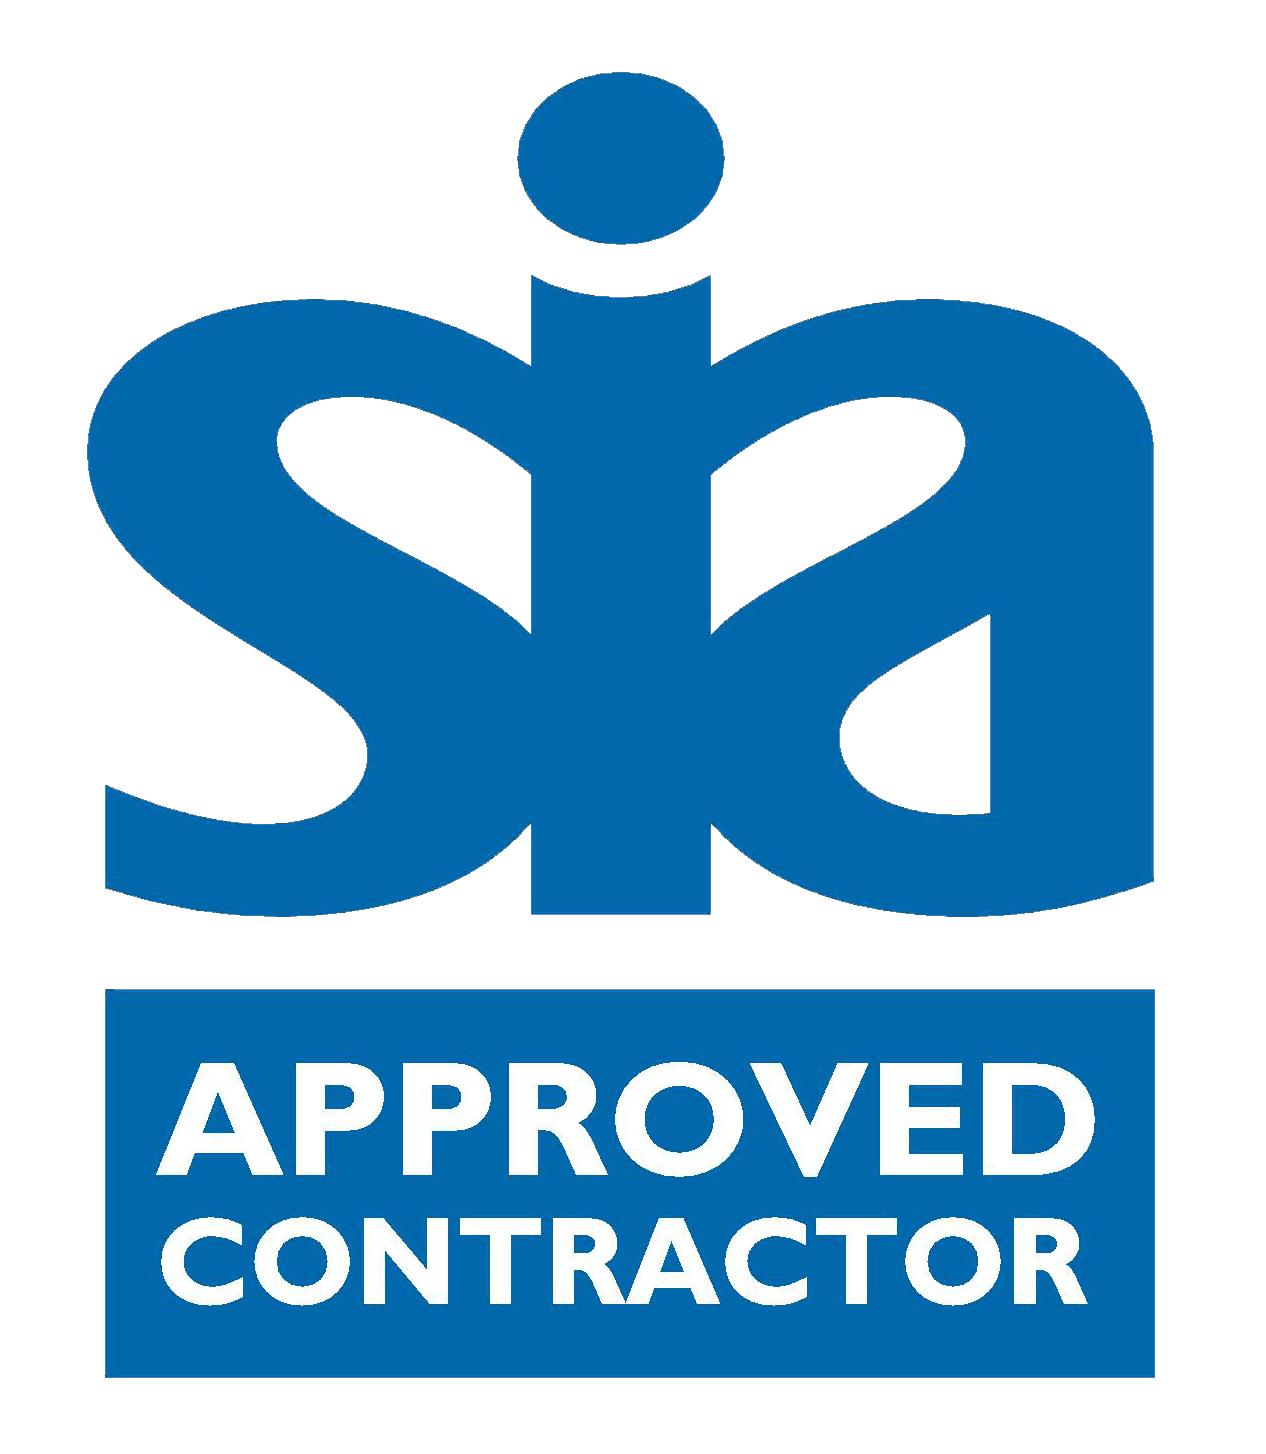 SIA approved contractor logo